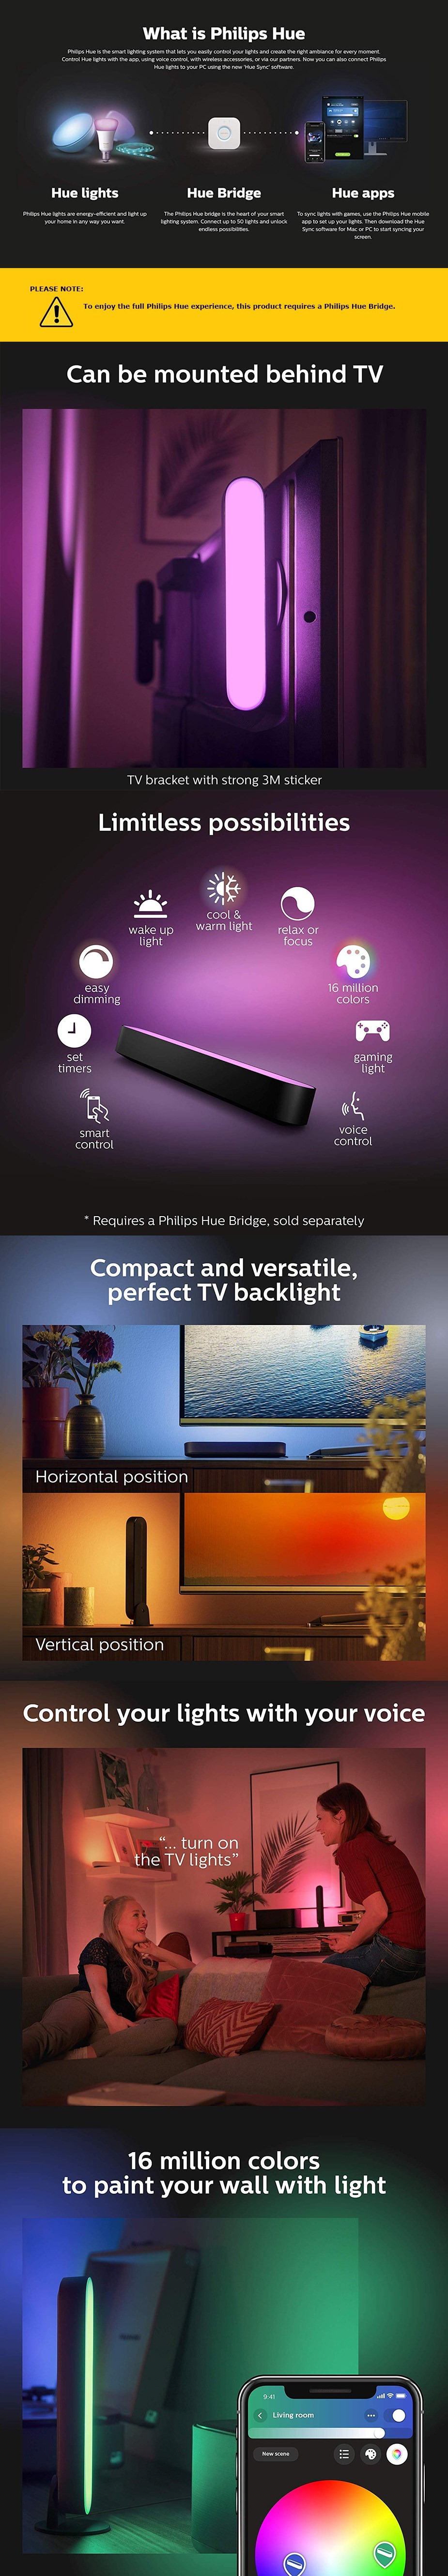 Philips Hue Play White/Colour Ambiance Smart LED Bar Light - Base Kit 1 Pack - Desktop Overview 1